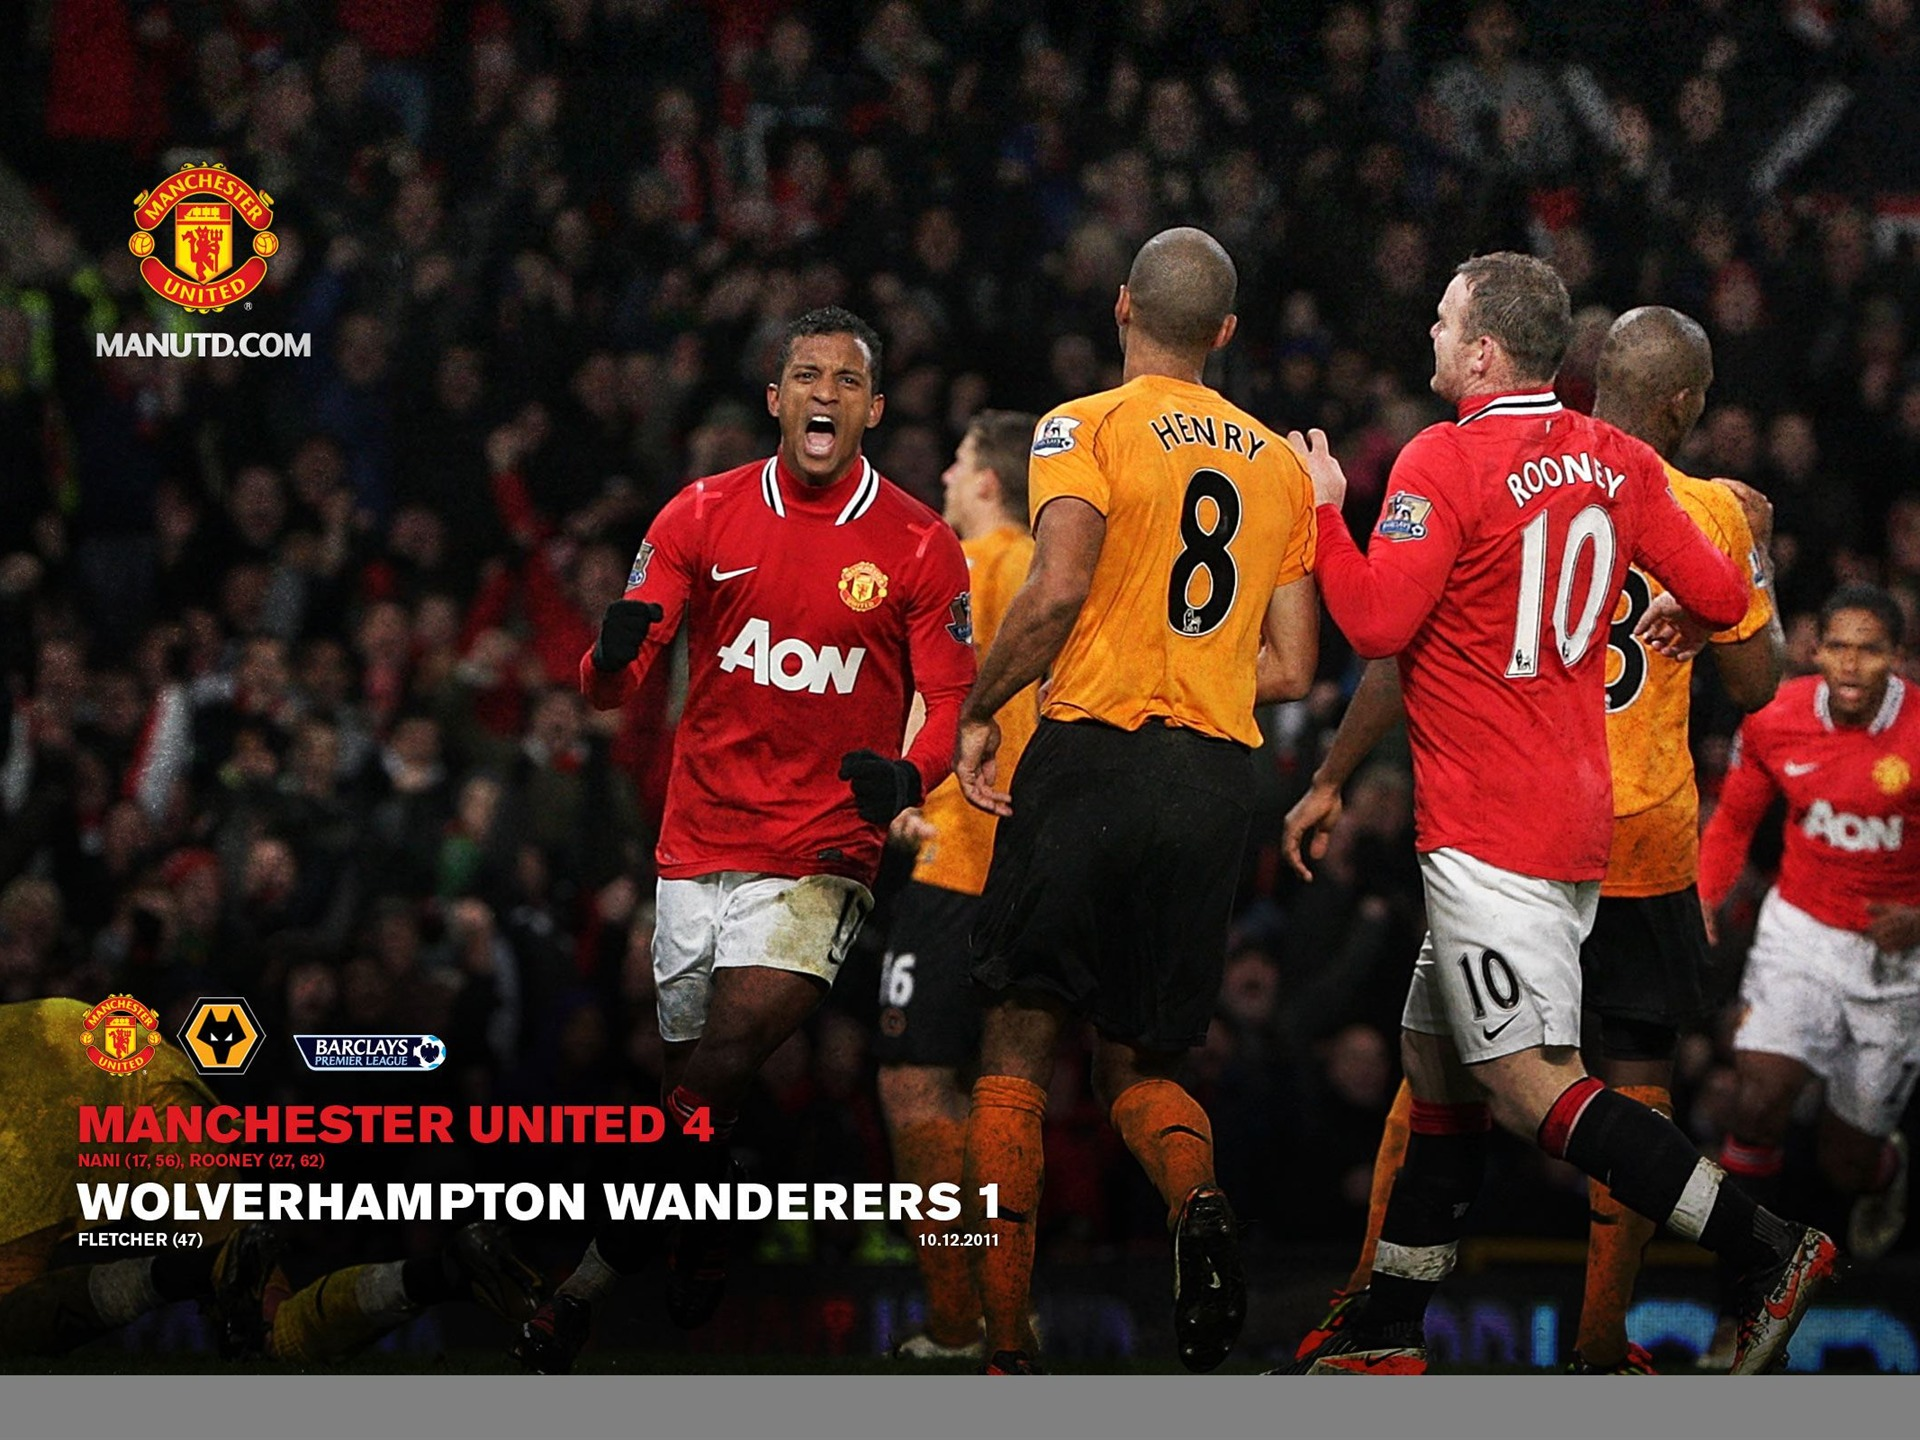 Wolves 1 Manchester United 4 Preview